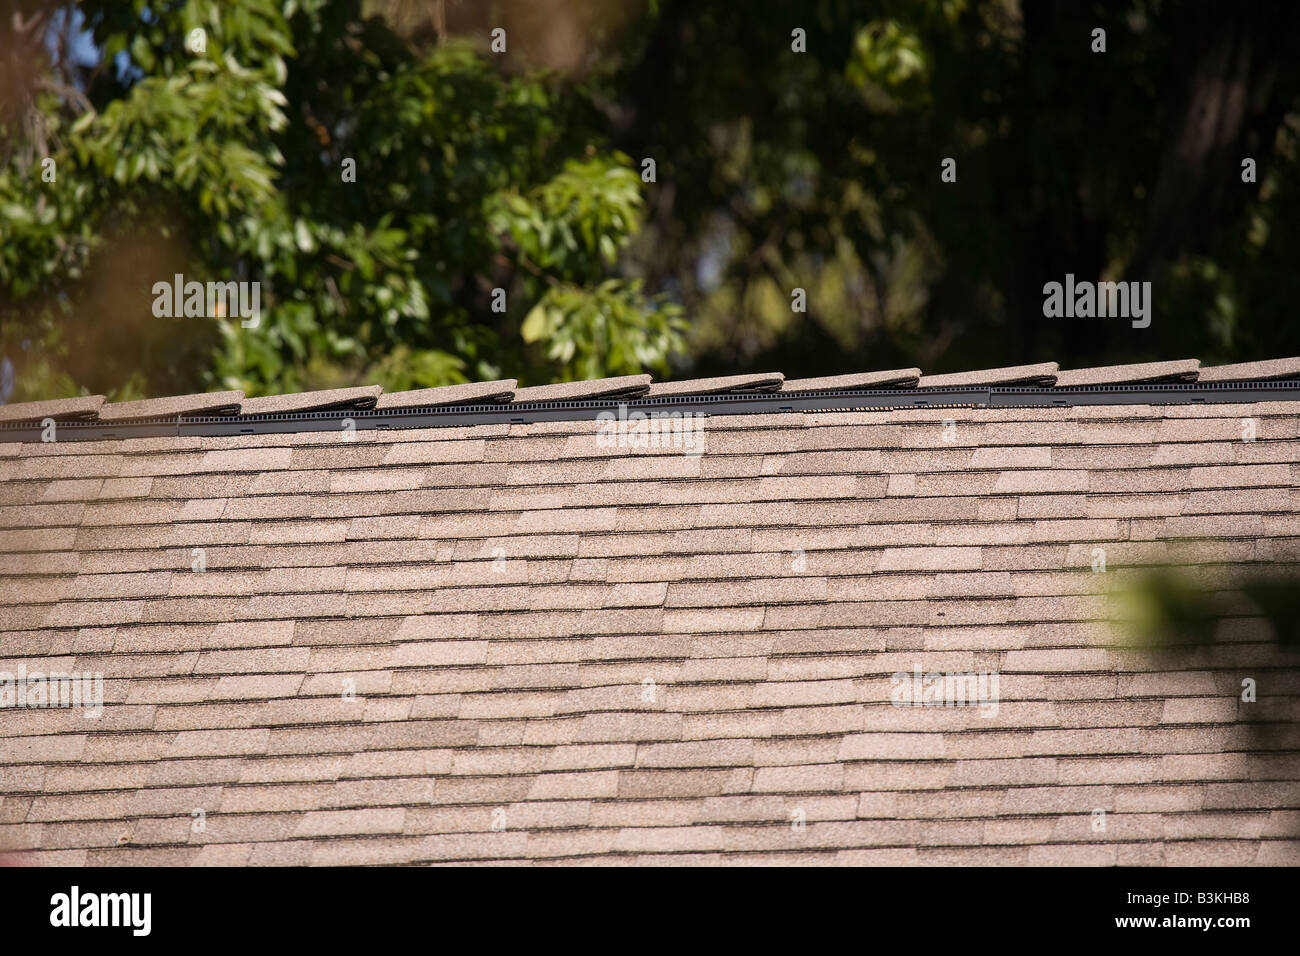 Roof ridge ventilation system - Stock Image